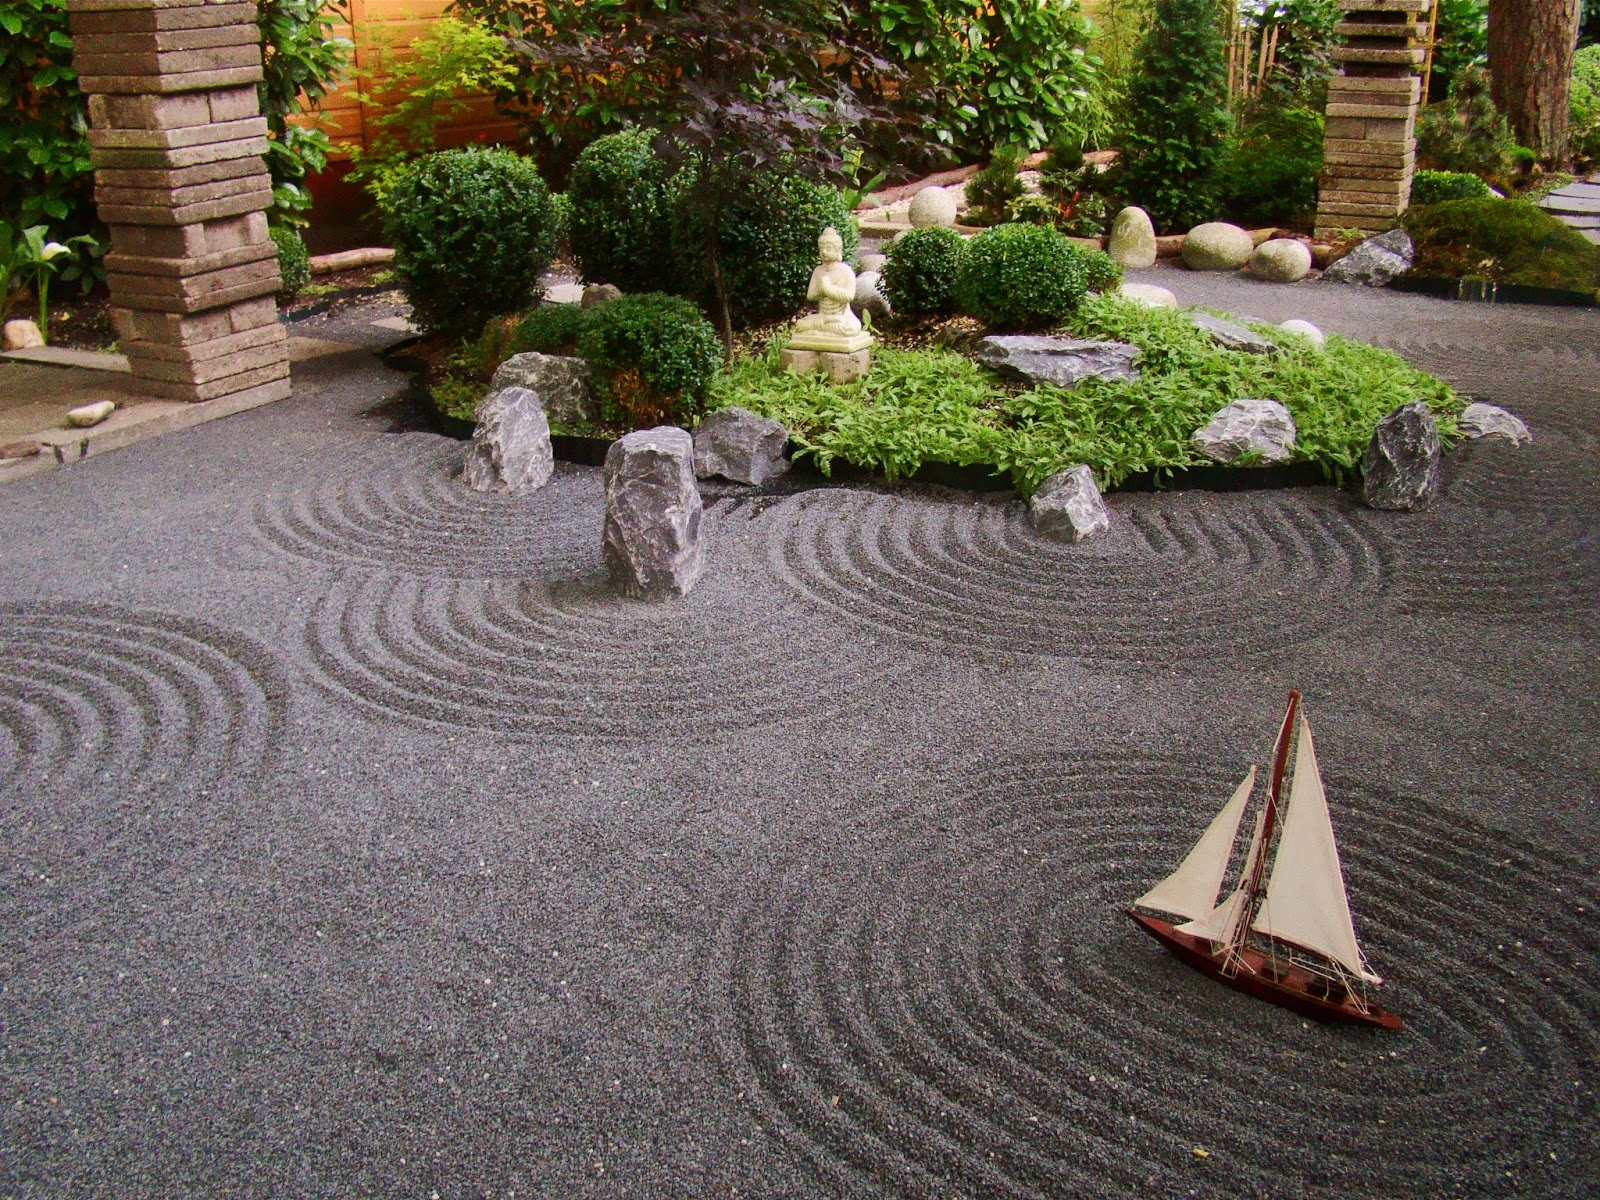 Kikiyaya forest dwelling zen garden july 2013 for Design of the garden